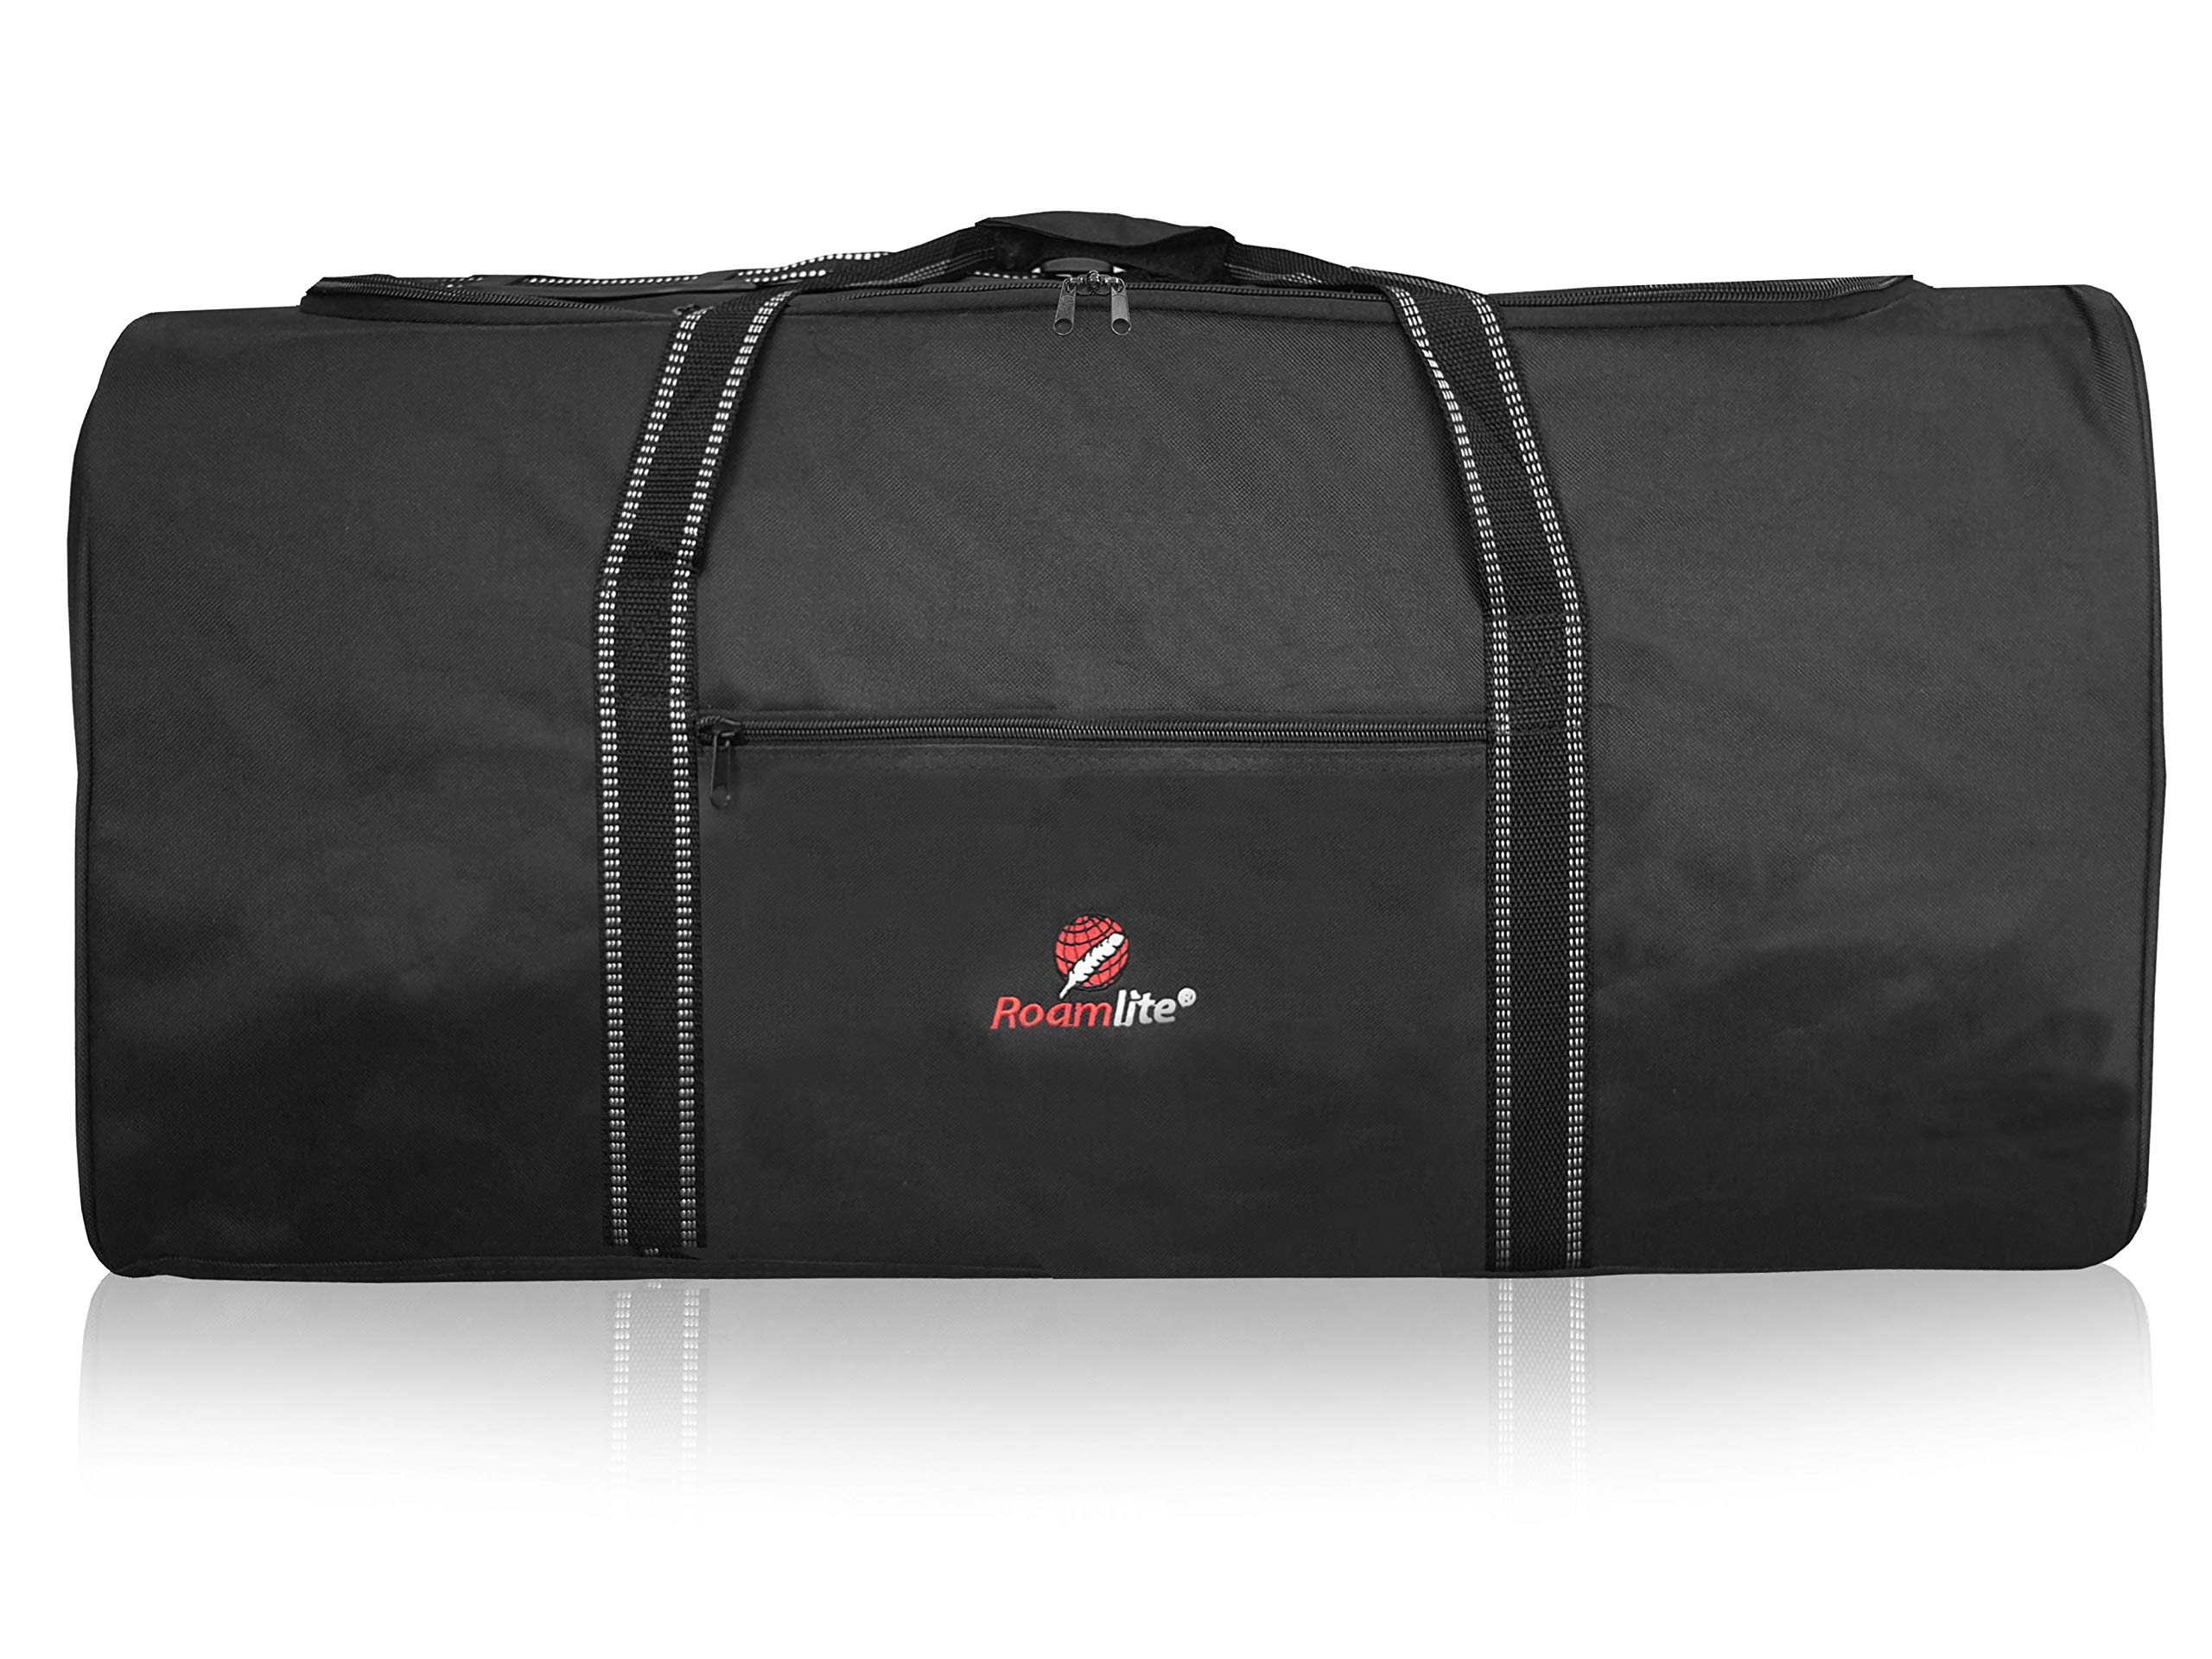 Roamlite Extra Large Travel Holdall - XL Duffle Bag in Strong Polyester - 76 cm x34cm x37cm - 100 Litre - RL30 Black